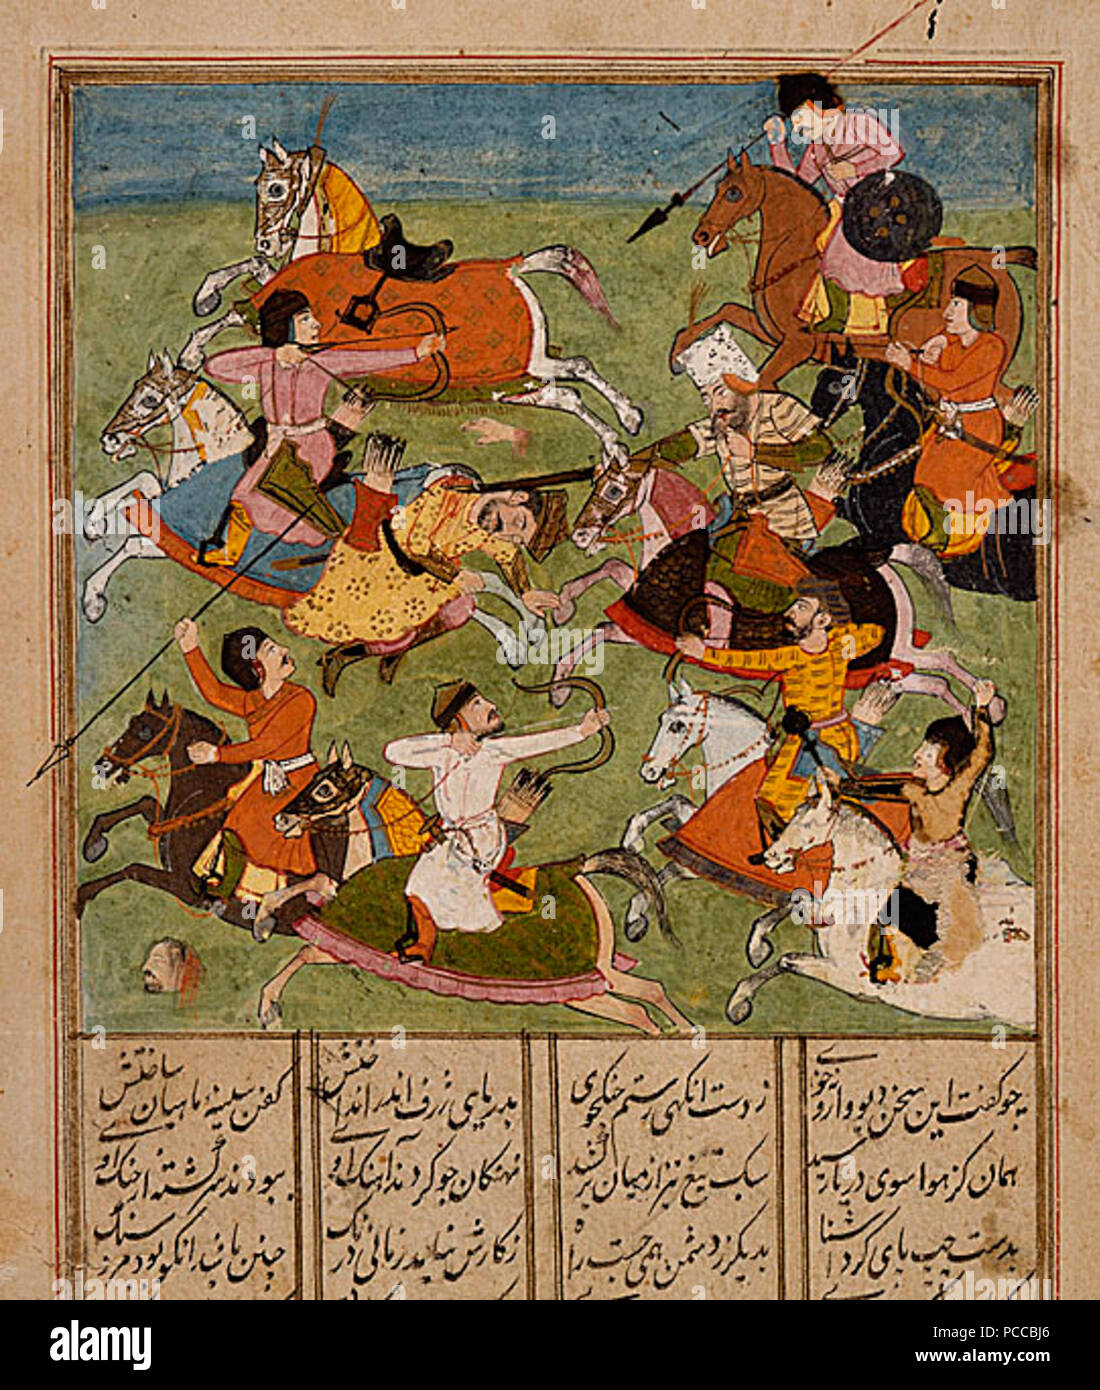 76 Battle Scene from an early 17th century Shahnama - Stock Image